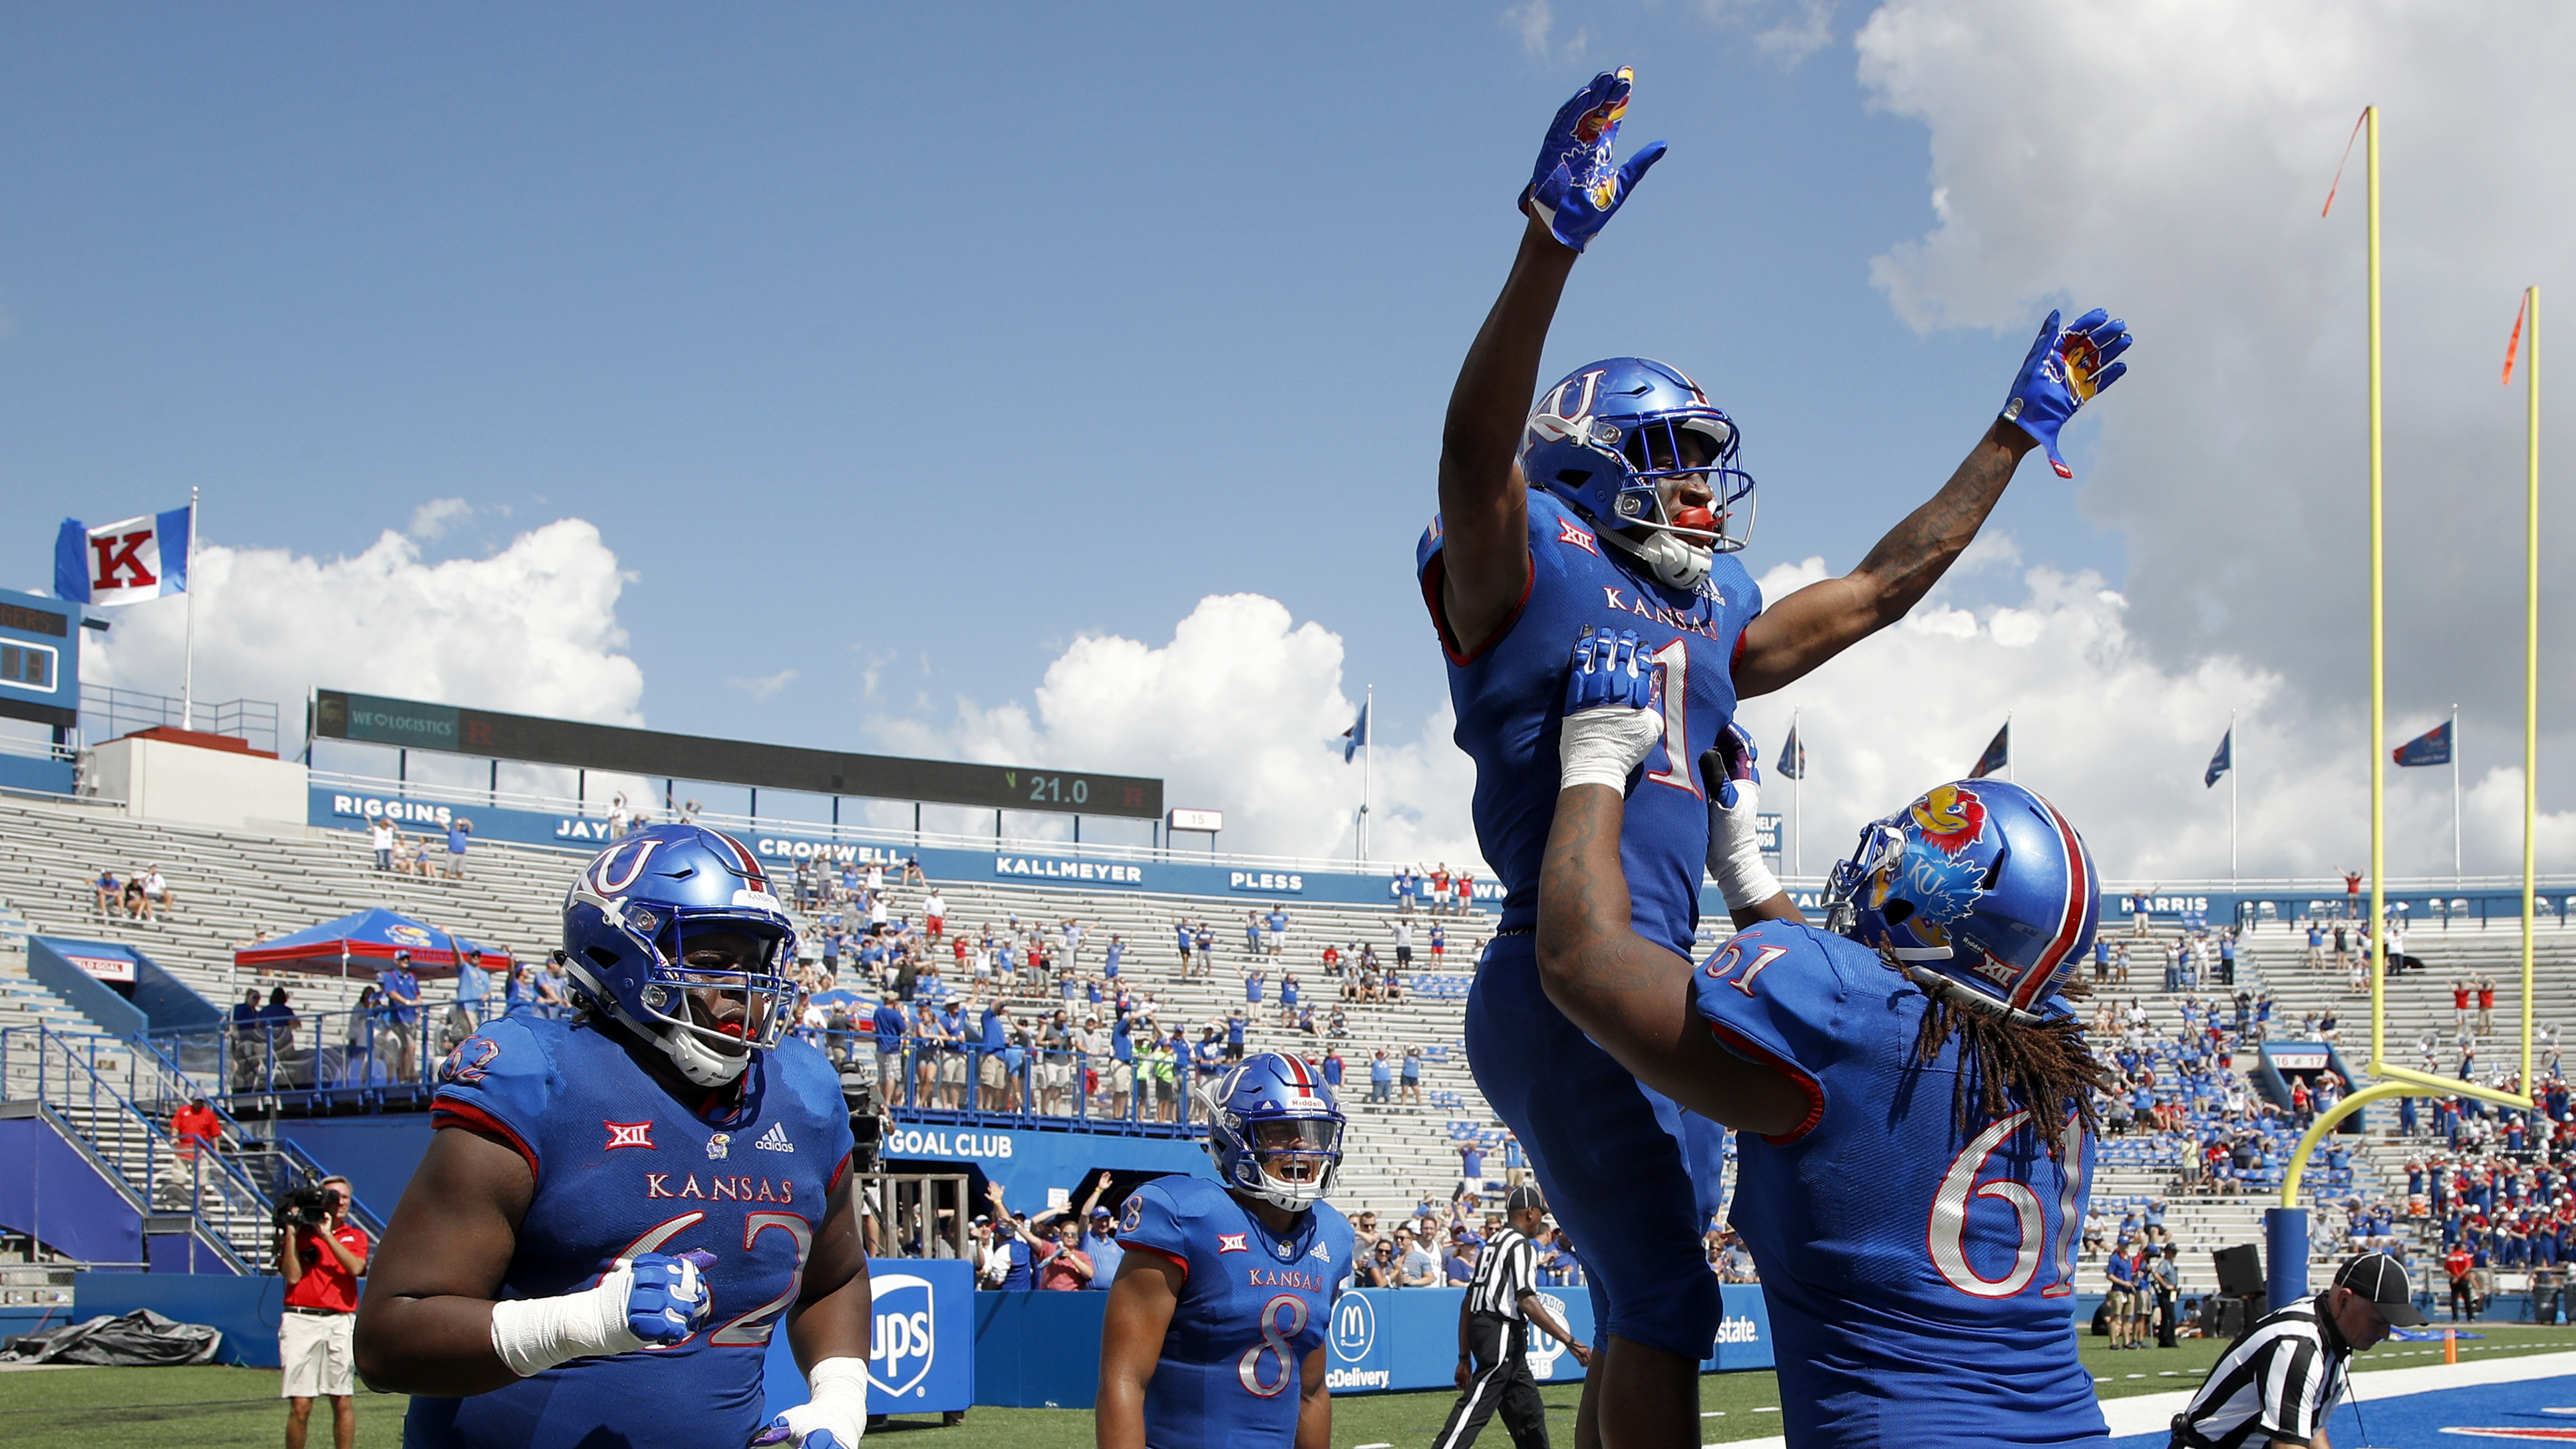 Kansas running back Pooka Williams Jr. (1) celebrates with teammates after scoring a touchdown in the rout of Rutgers.